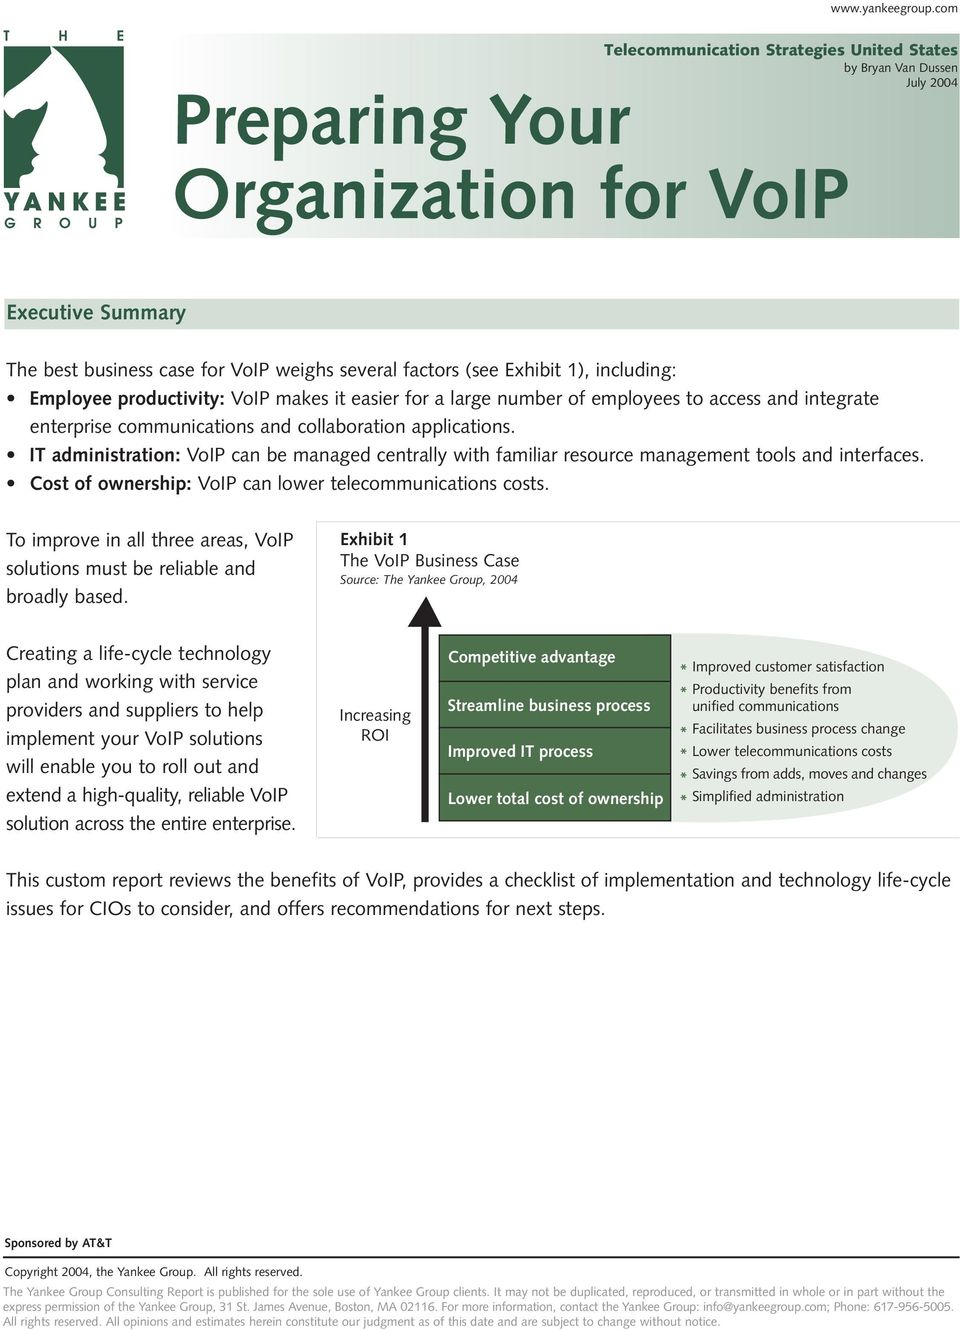 1), including: Employee productivity: VoIP makes it easier for a large number of employees to access and integrate enterprise communications and collaboration applications.